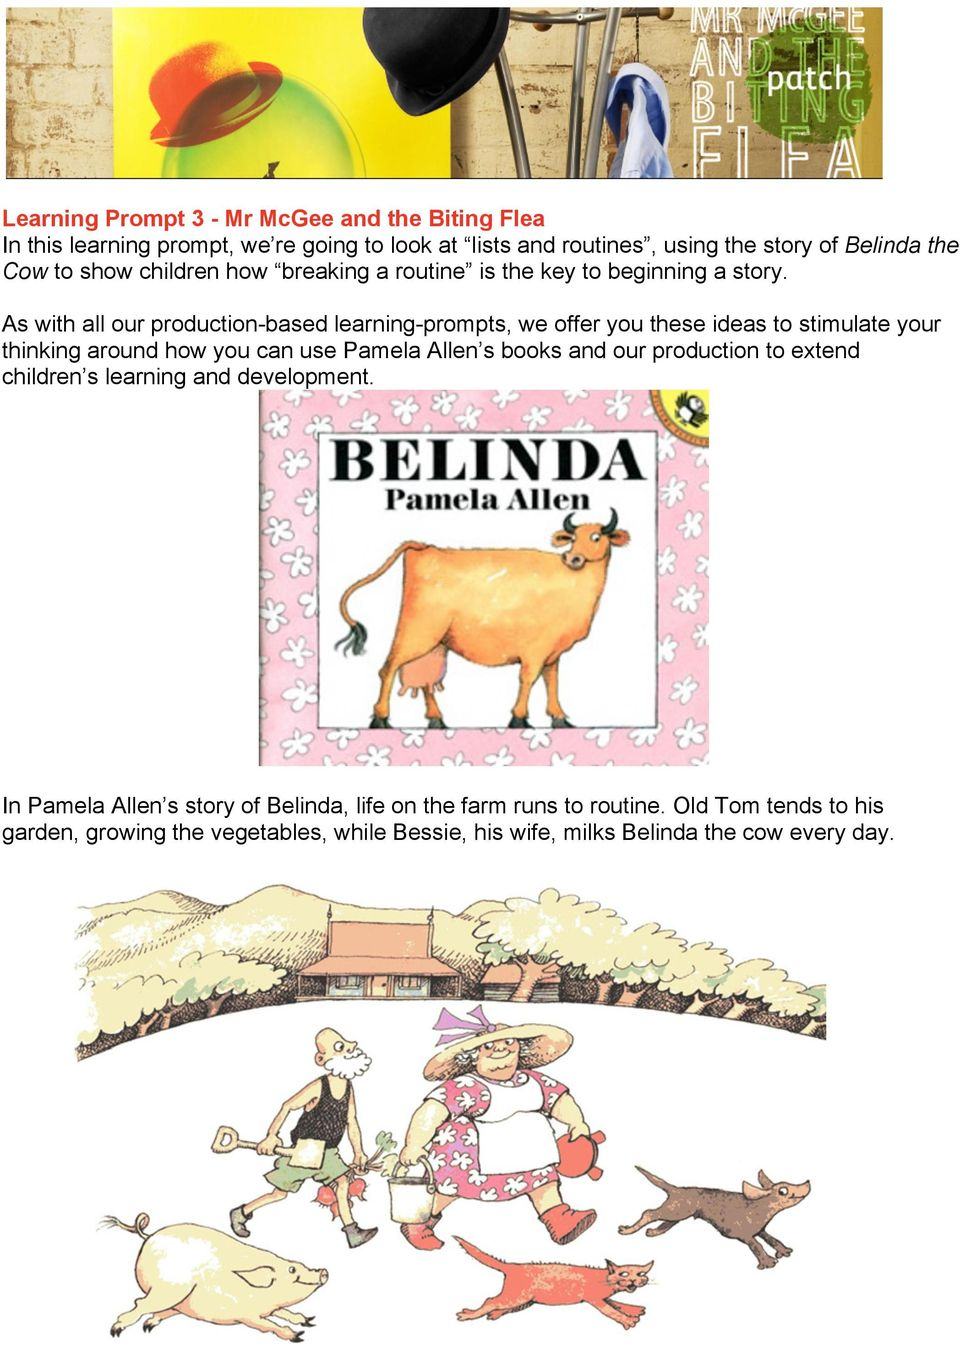 As with all our production-based learning-prompts, we offer you these ideas to stimulate your thinking around how you can use Pamela Allen s books and our